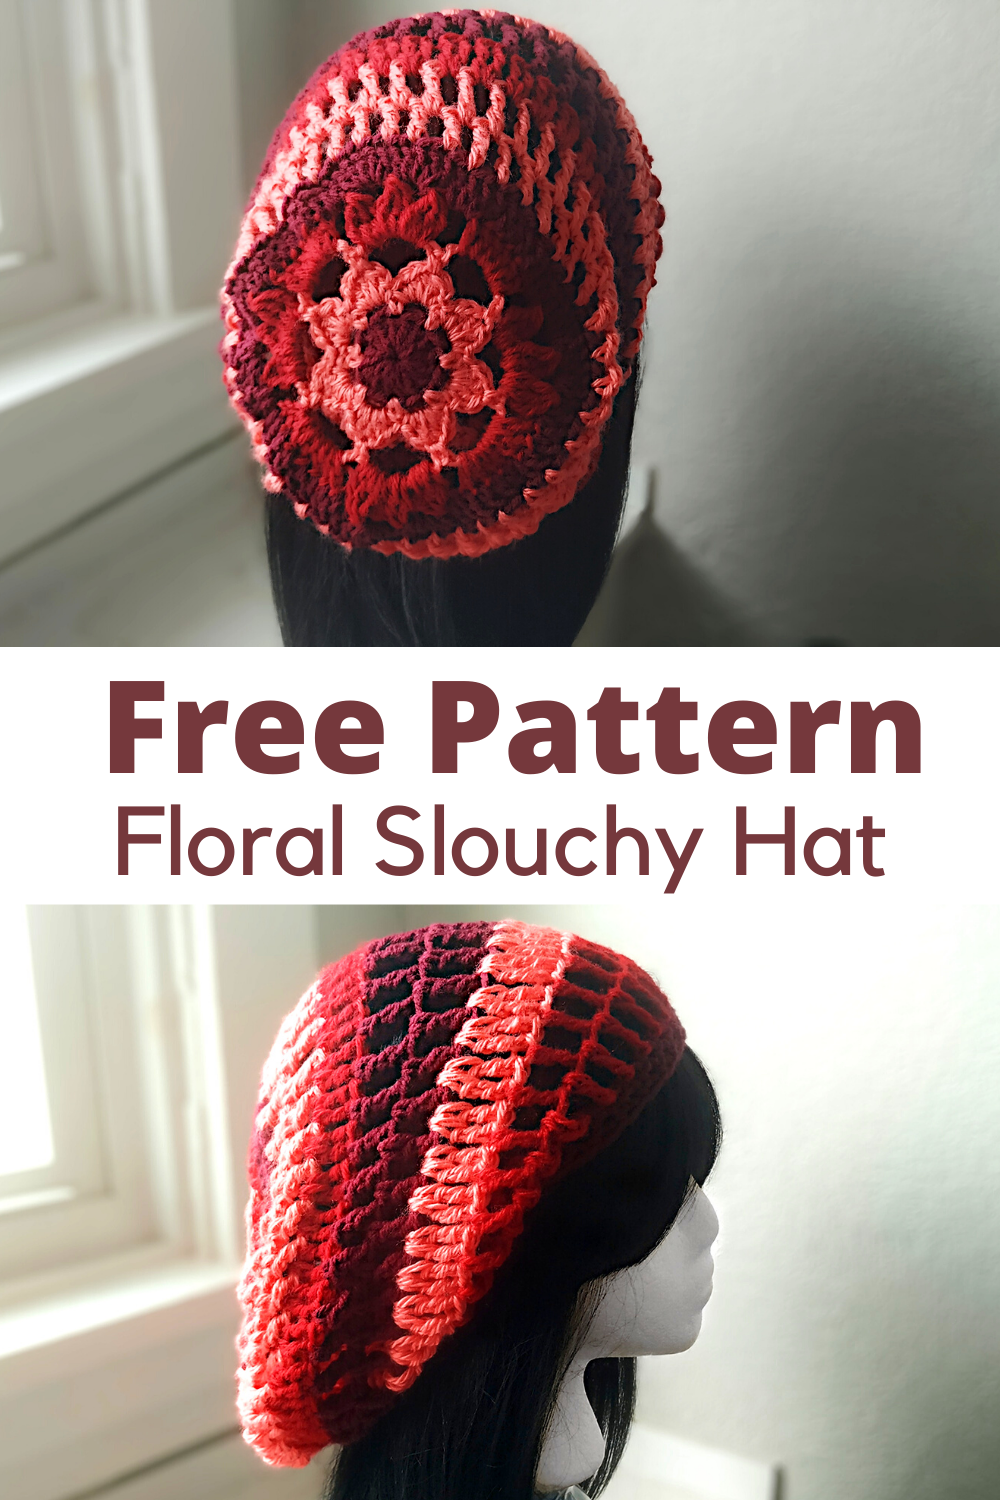 You don't have to put down your crochet hook just because the weather is getting warmer. Try this easy